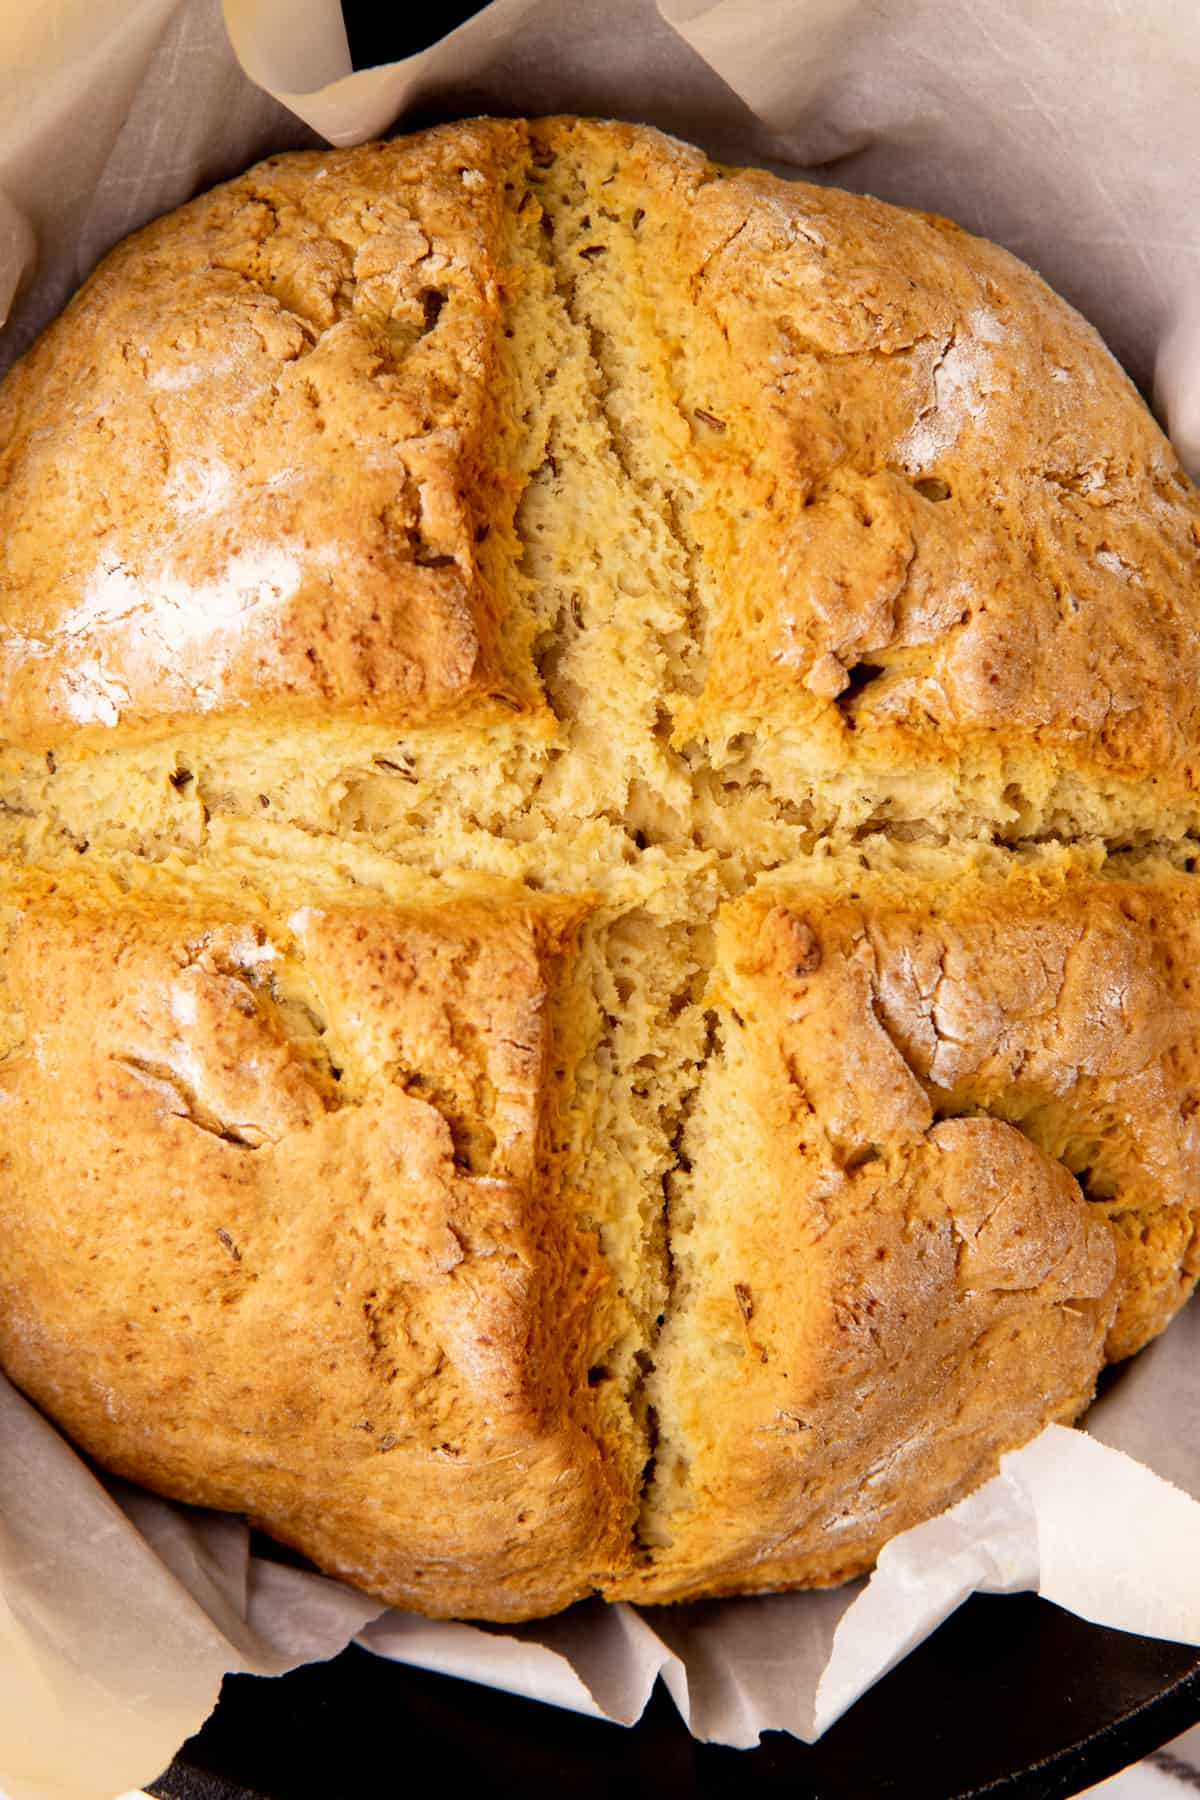 A round loaf of Irish soda bread rests in a cast iron skillet.